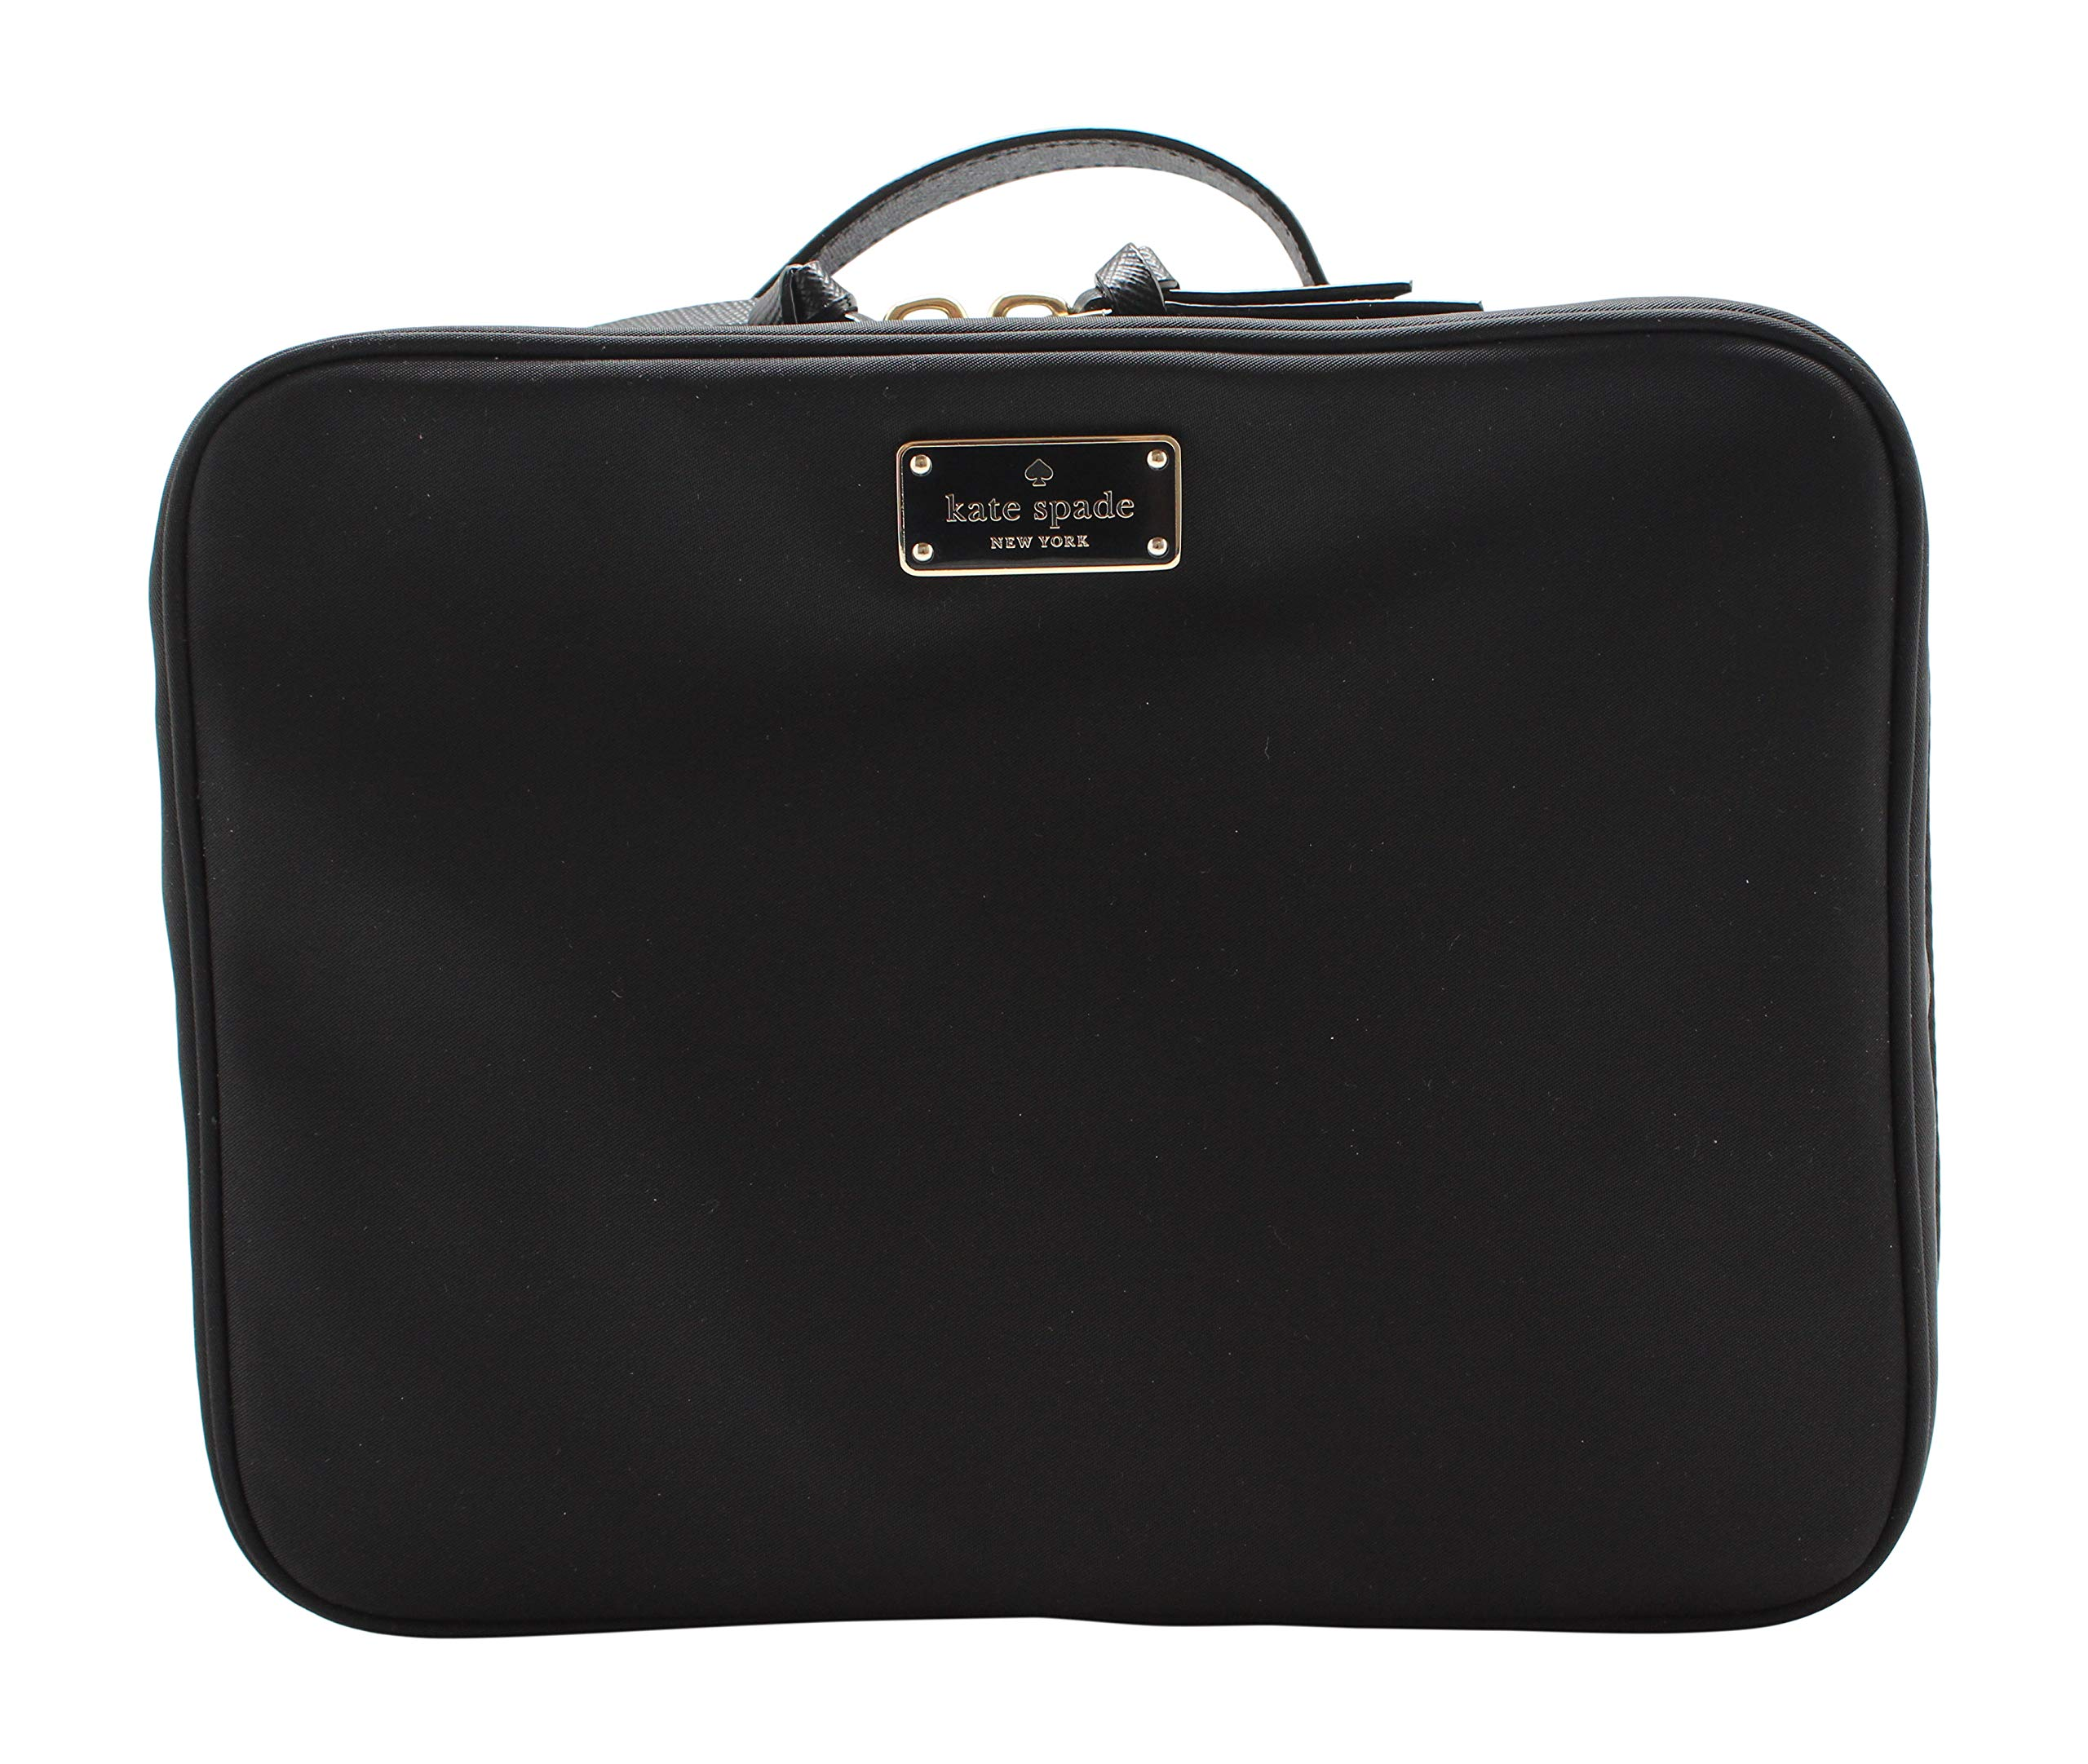 Kate Spade New York Large Wilson Road Martie Travel Cosmetic Case Bag (Black) by Kate Spade New York